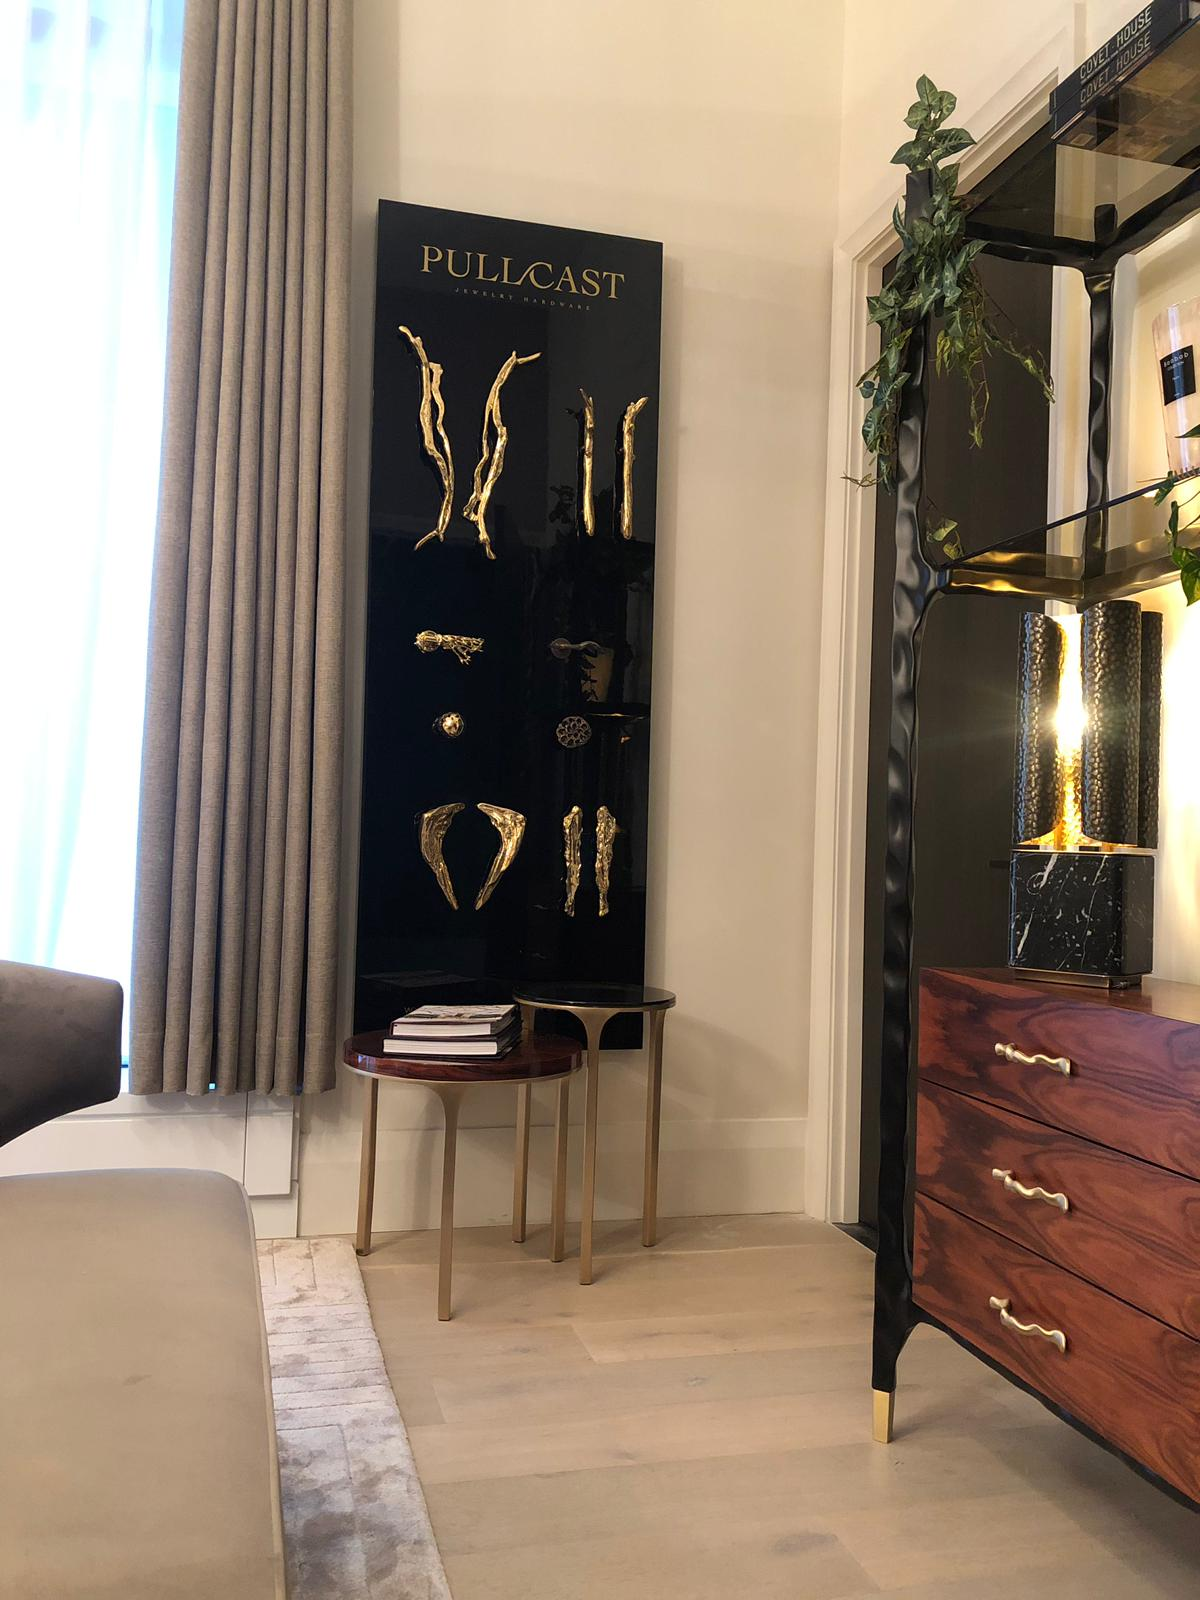 Covet NYC is Open! Check Out this Amazing Showroom covet nyc Covet NYC is Open! Check Out this Amazing Showroom Covet NYC is Open Check Out this Amazing Showroom